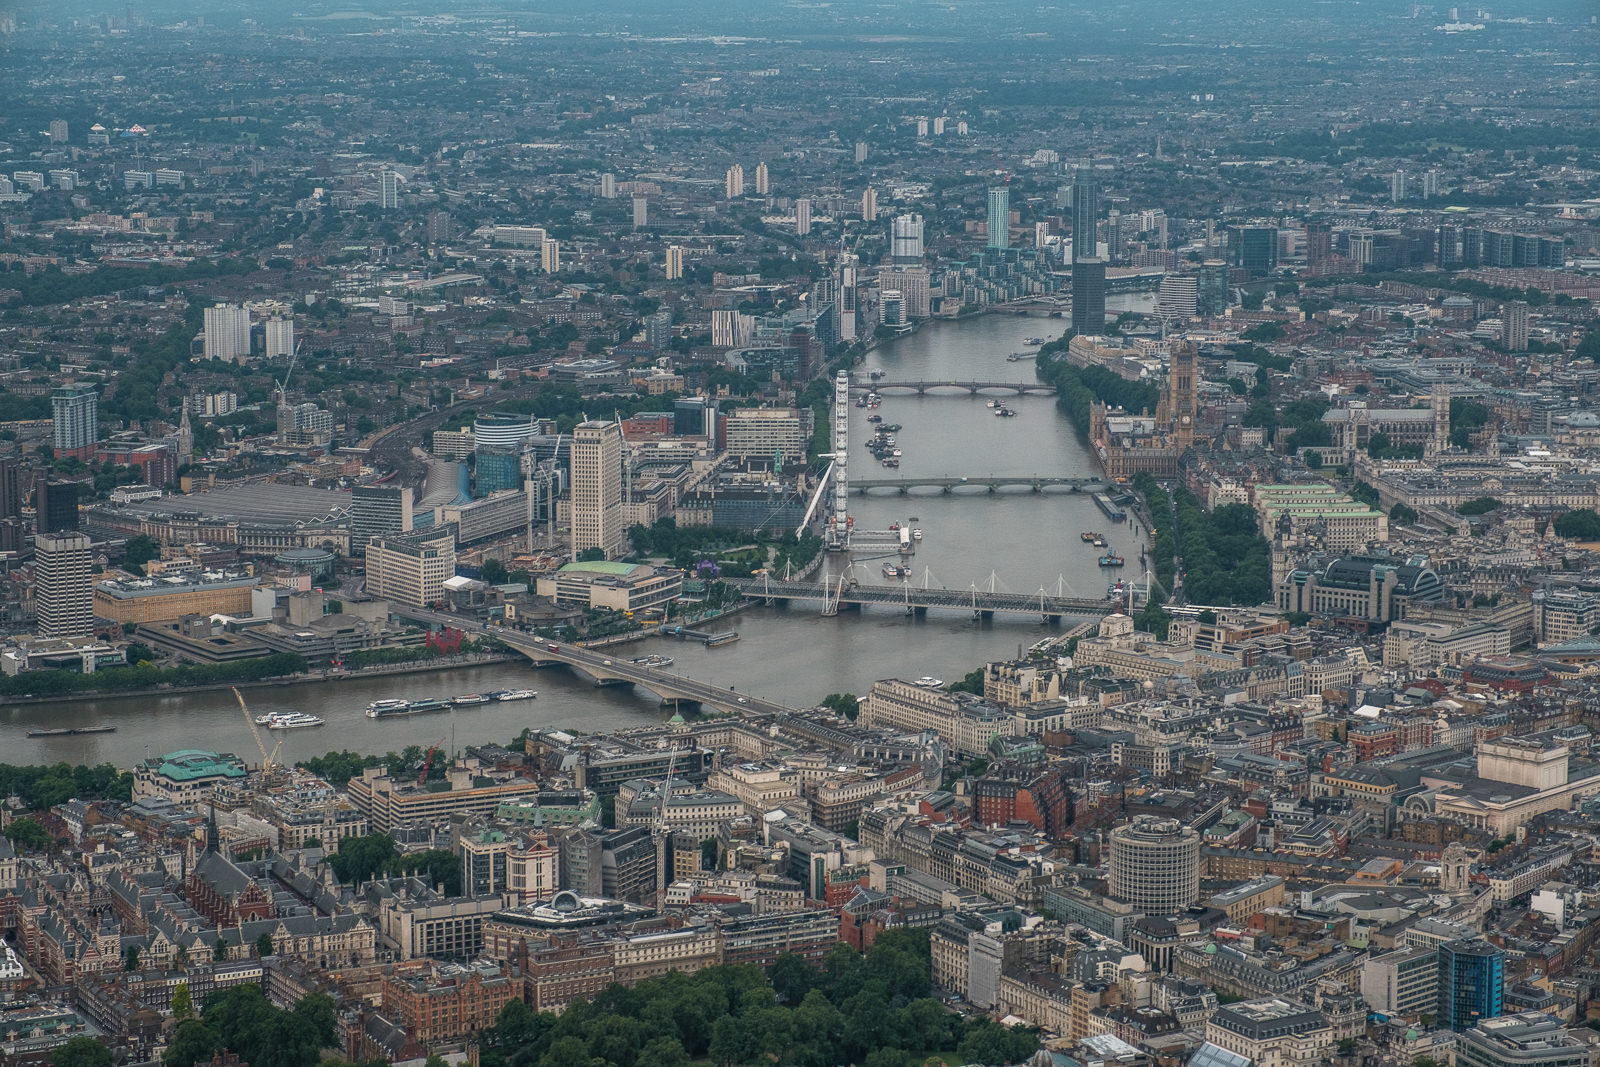 London towards Westminster. ISO500 16-55mm f5.6 1/250s